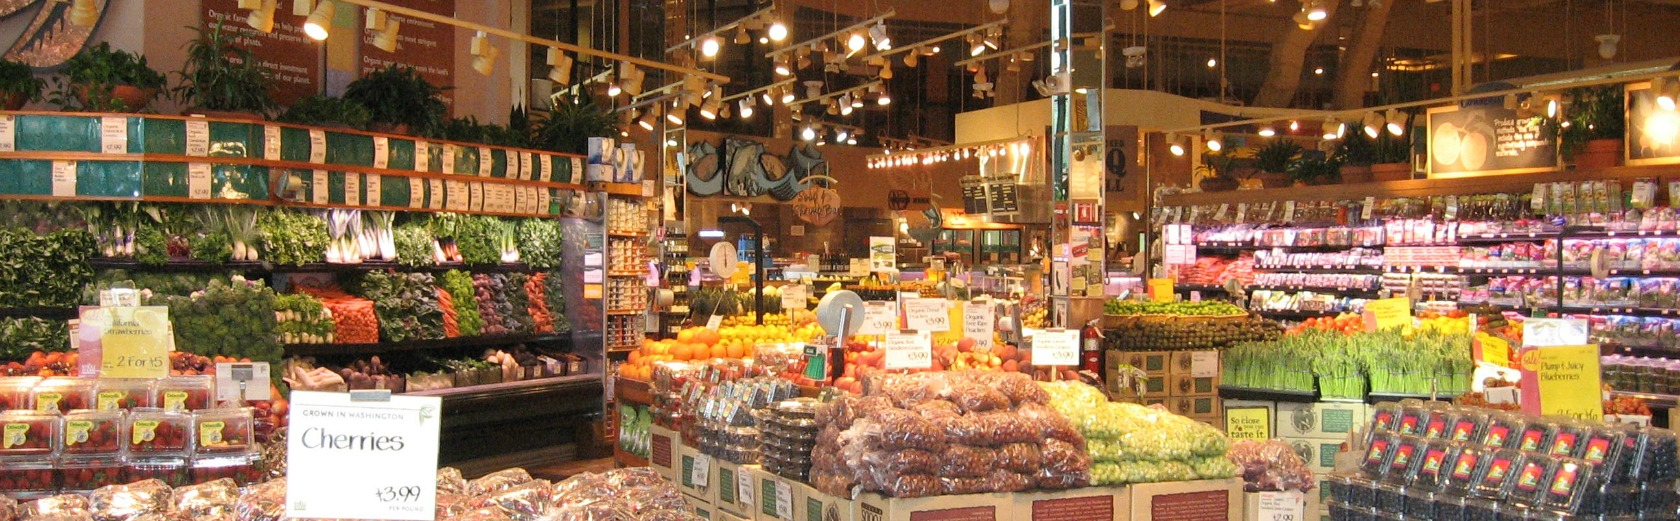 92c5cf17bcd6716747a3_Whole_Foods_inside_generic.png